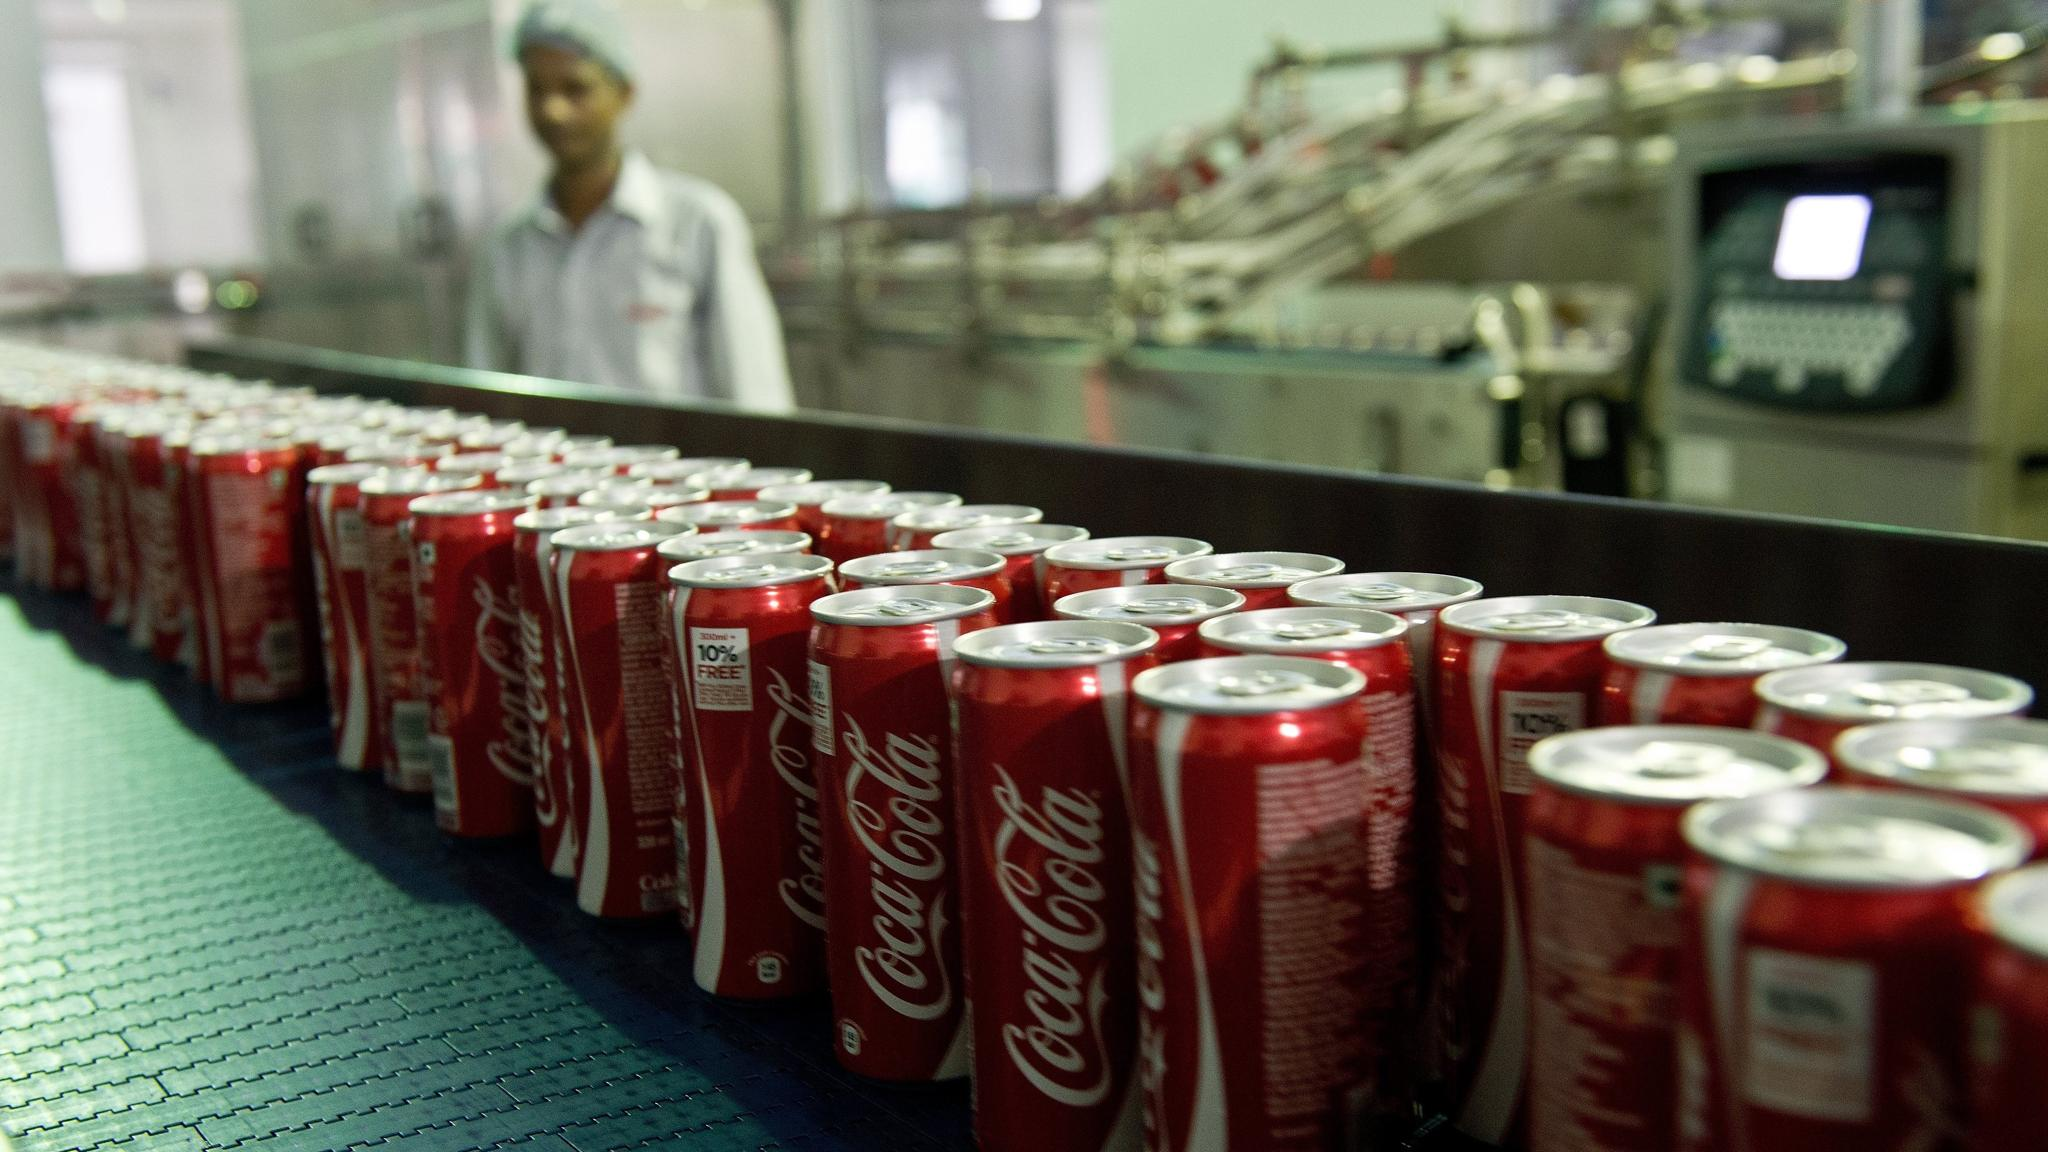 Water shortage shuts Coca-Cola plant in India | Financial Times